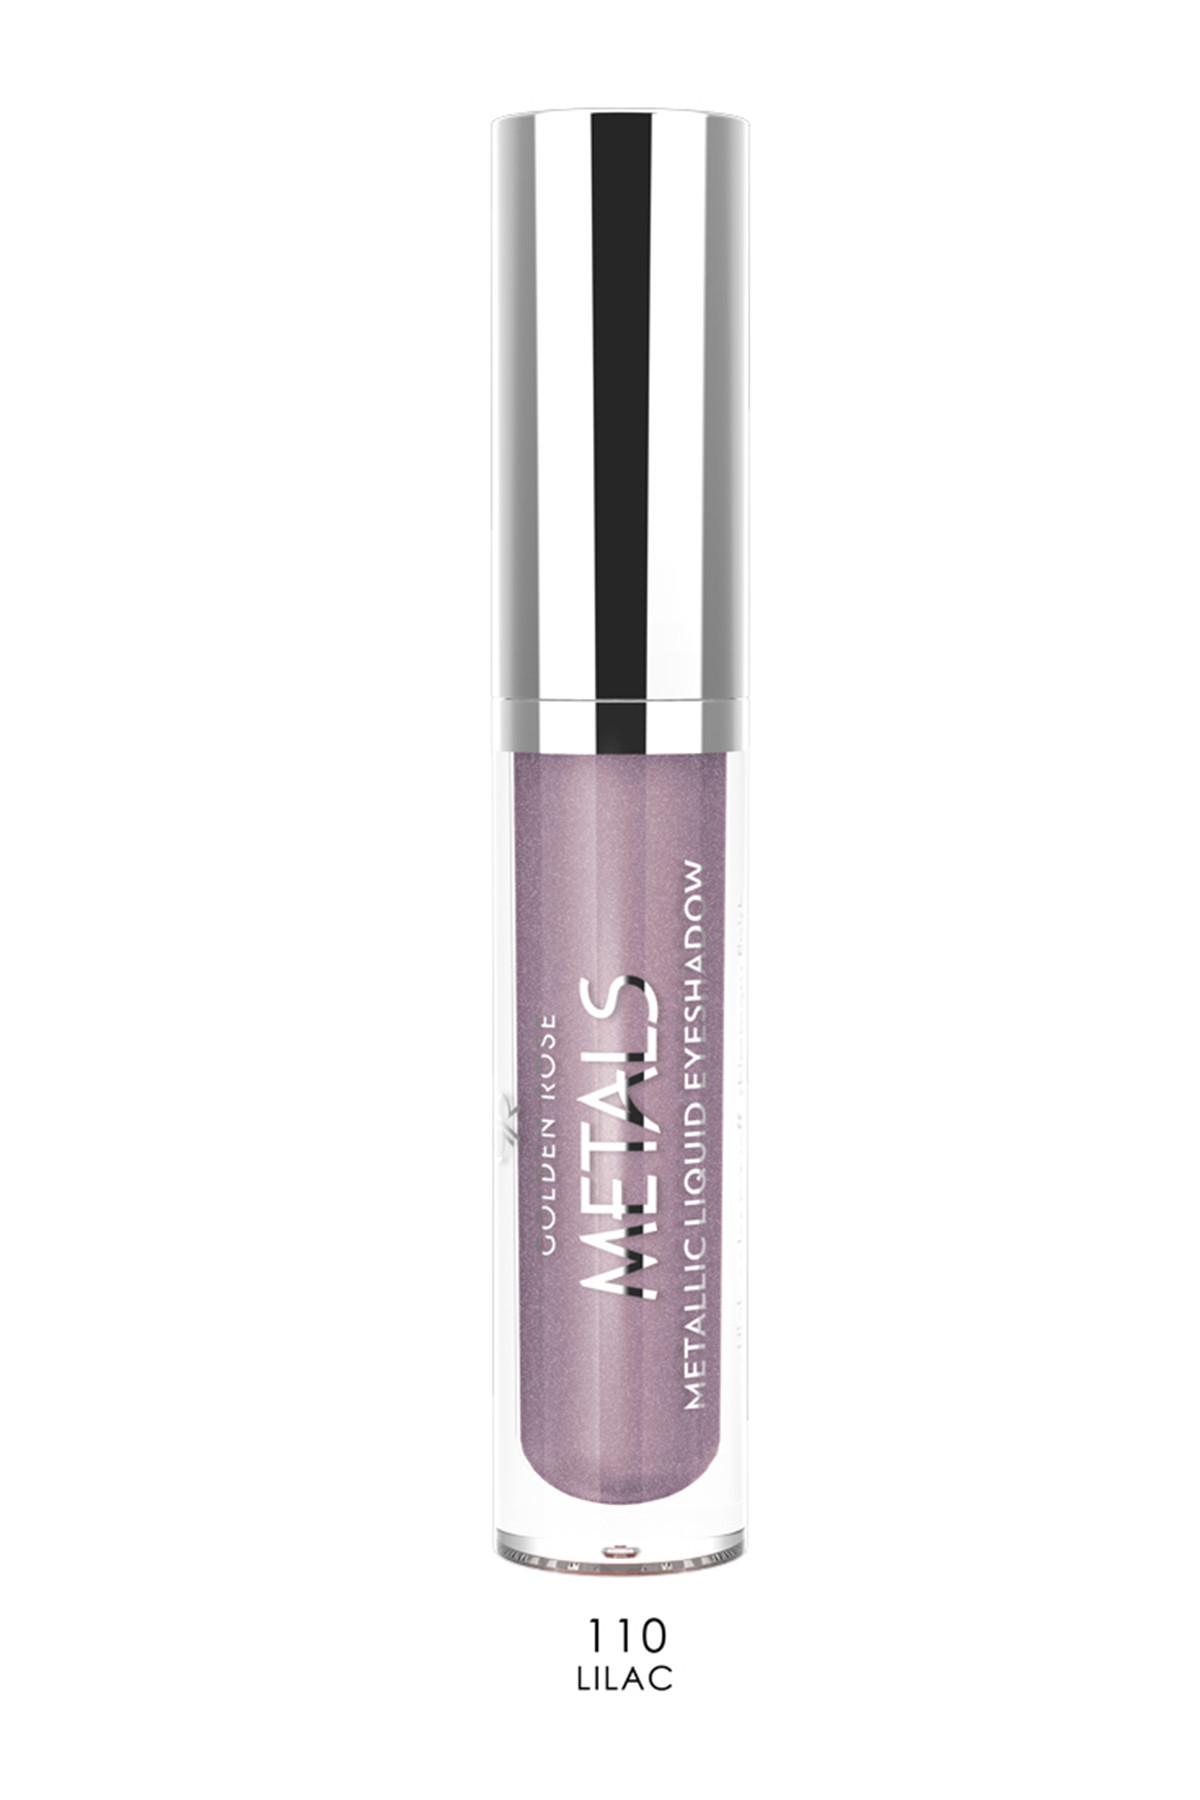 Golden Rose Likit Metalik Göz Farı – Metals Metallic Liquid Eyeshadow No:110 Lilac 8691190137601 – 21.52 TL